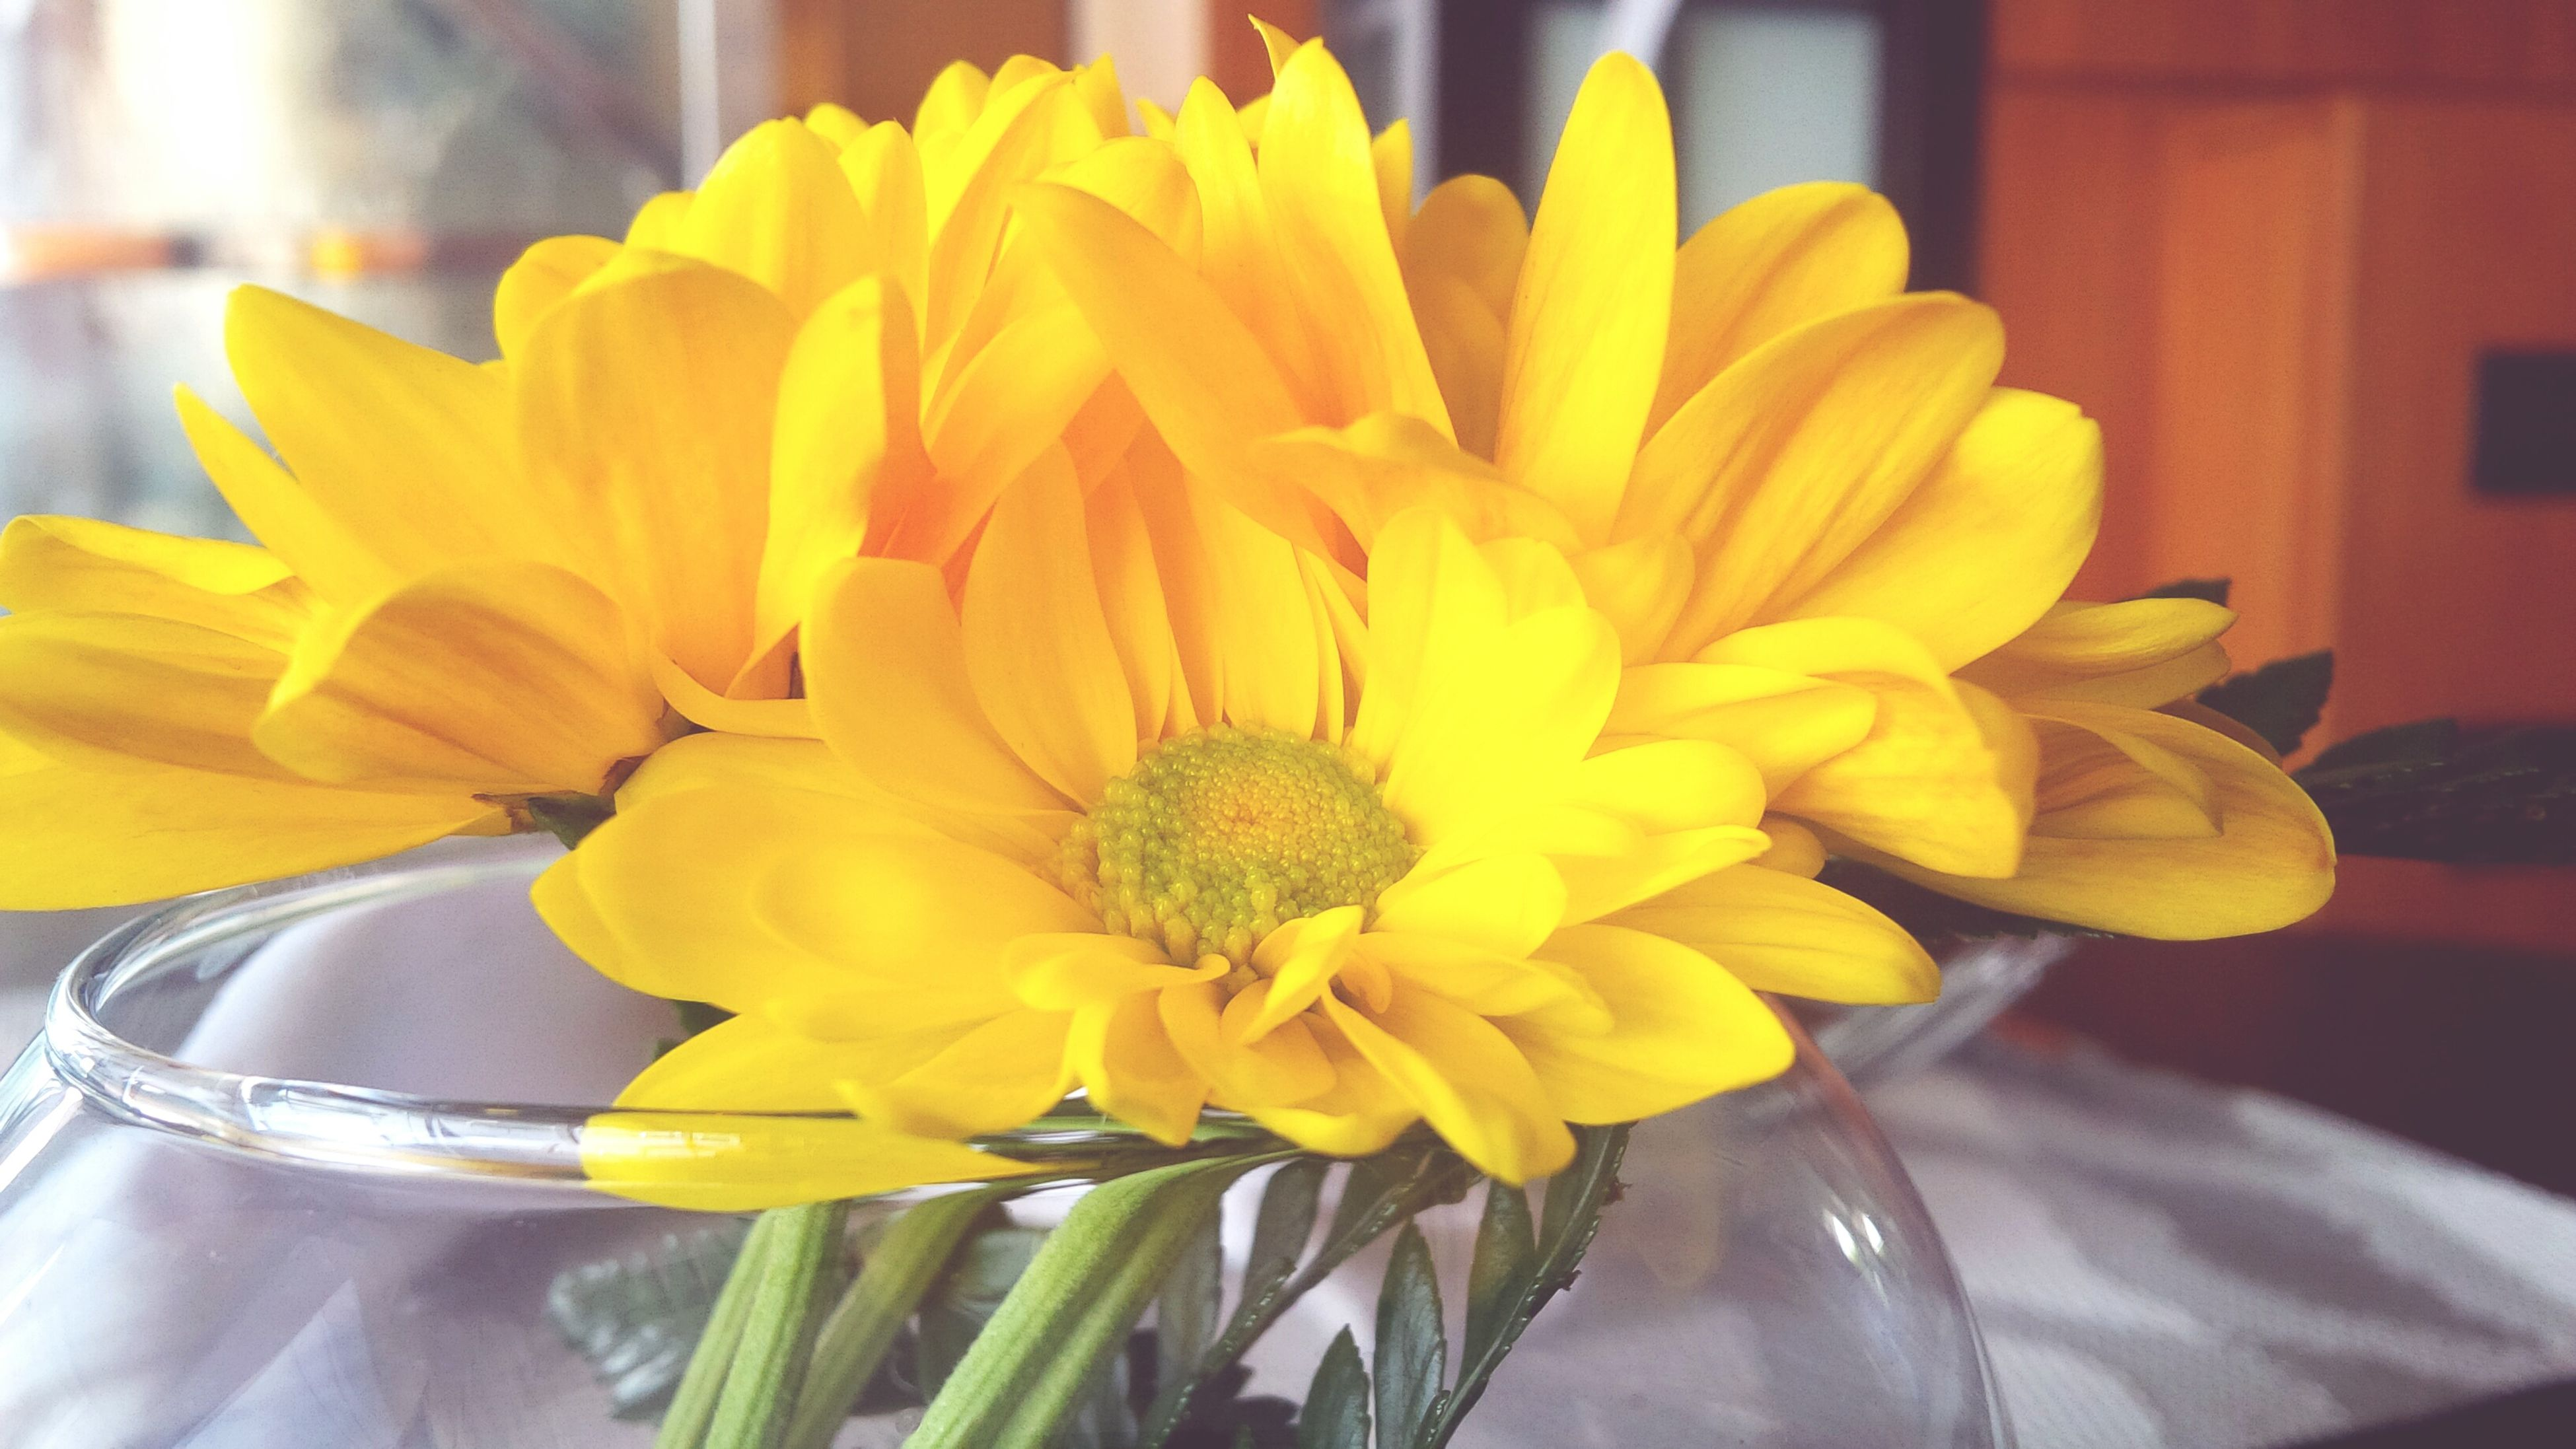 flower, yellow, petal, freshness, flower head, fragility, close-up, focus on foreground, beauty in nature, indoors, blooming, nature, growth, pollen, vase, plant, single flower, day, potted plant, table